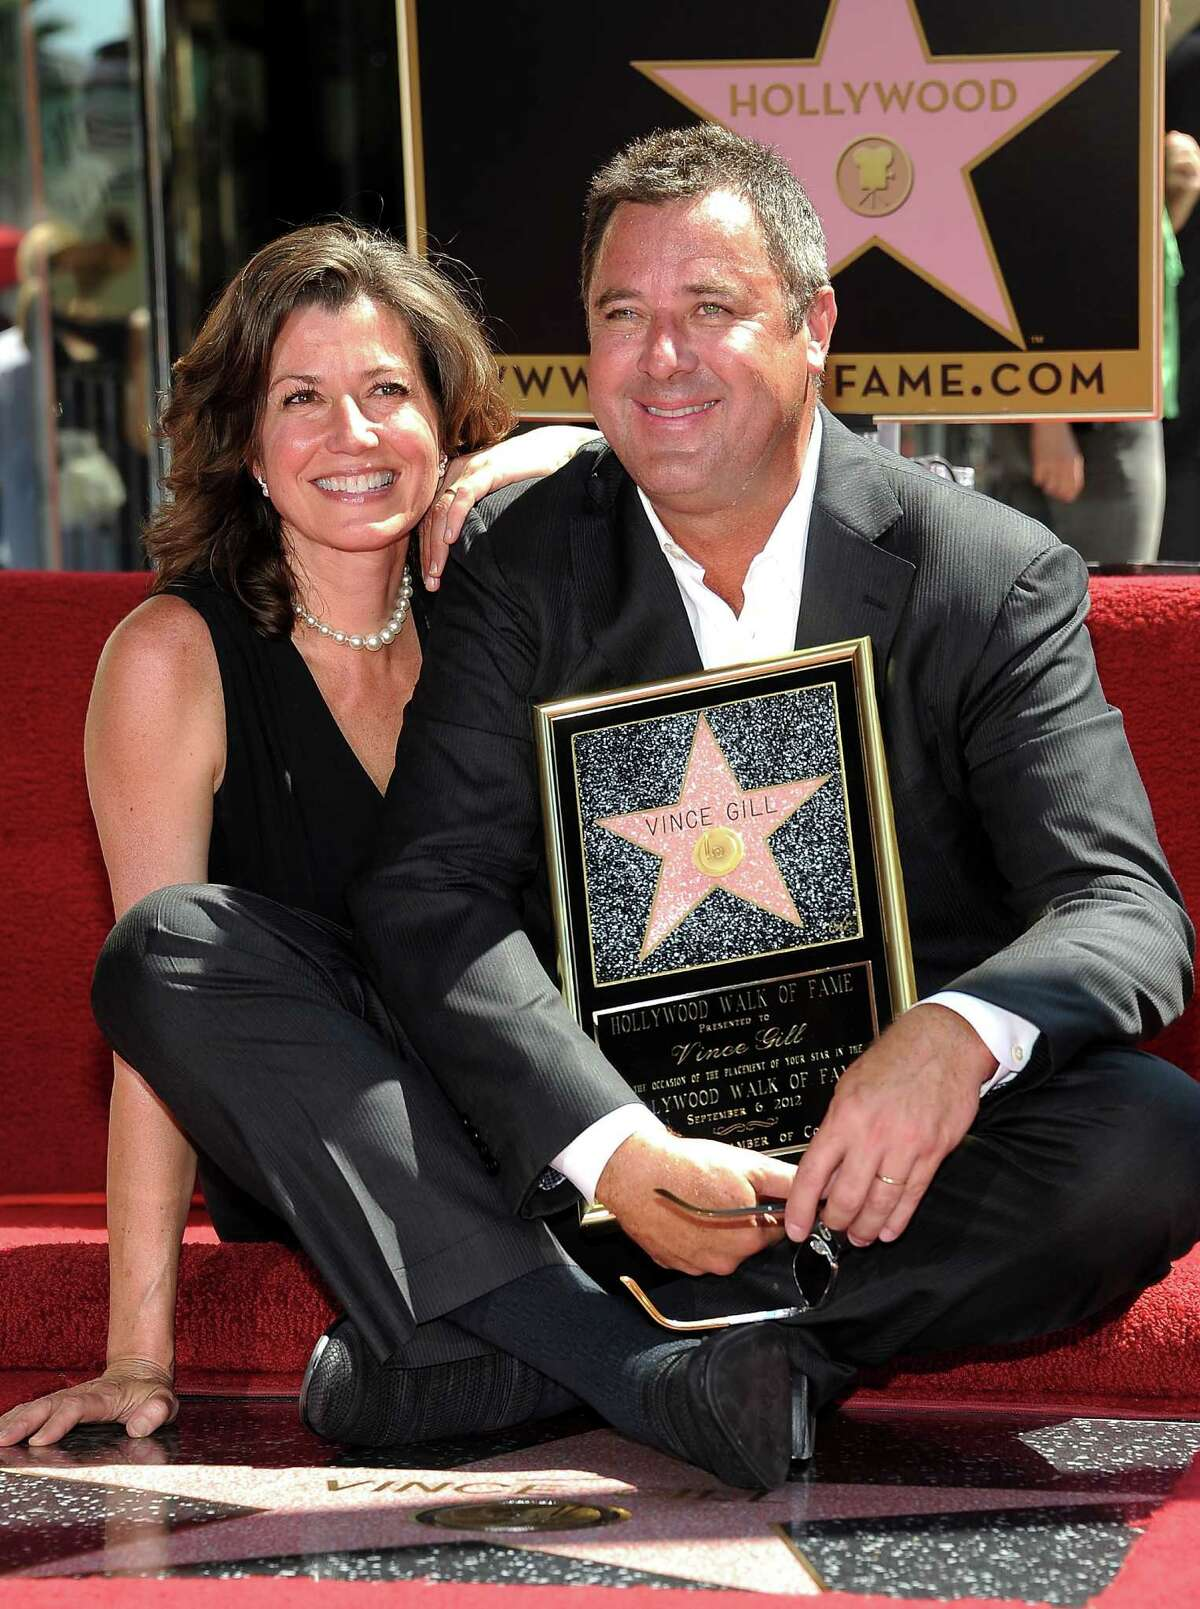 Gill (with wife Amy Grant) gets his Walk of Fame star.